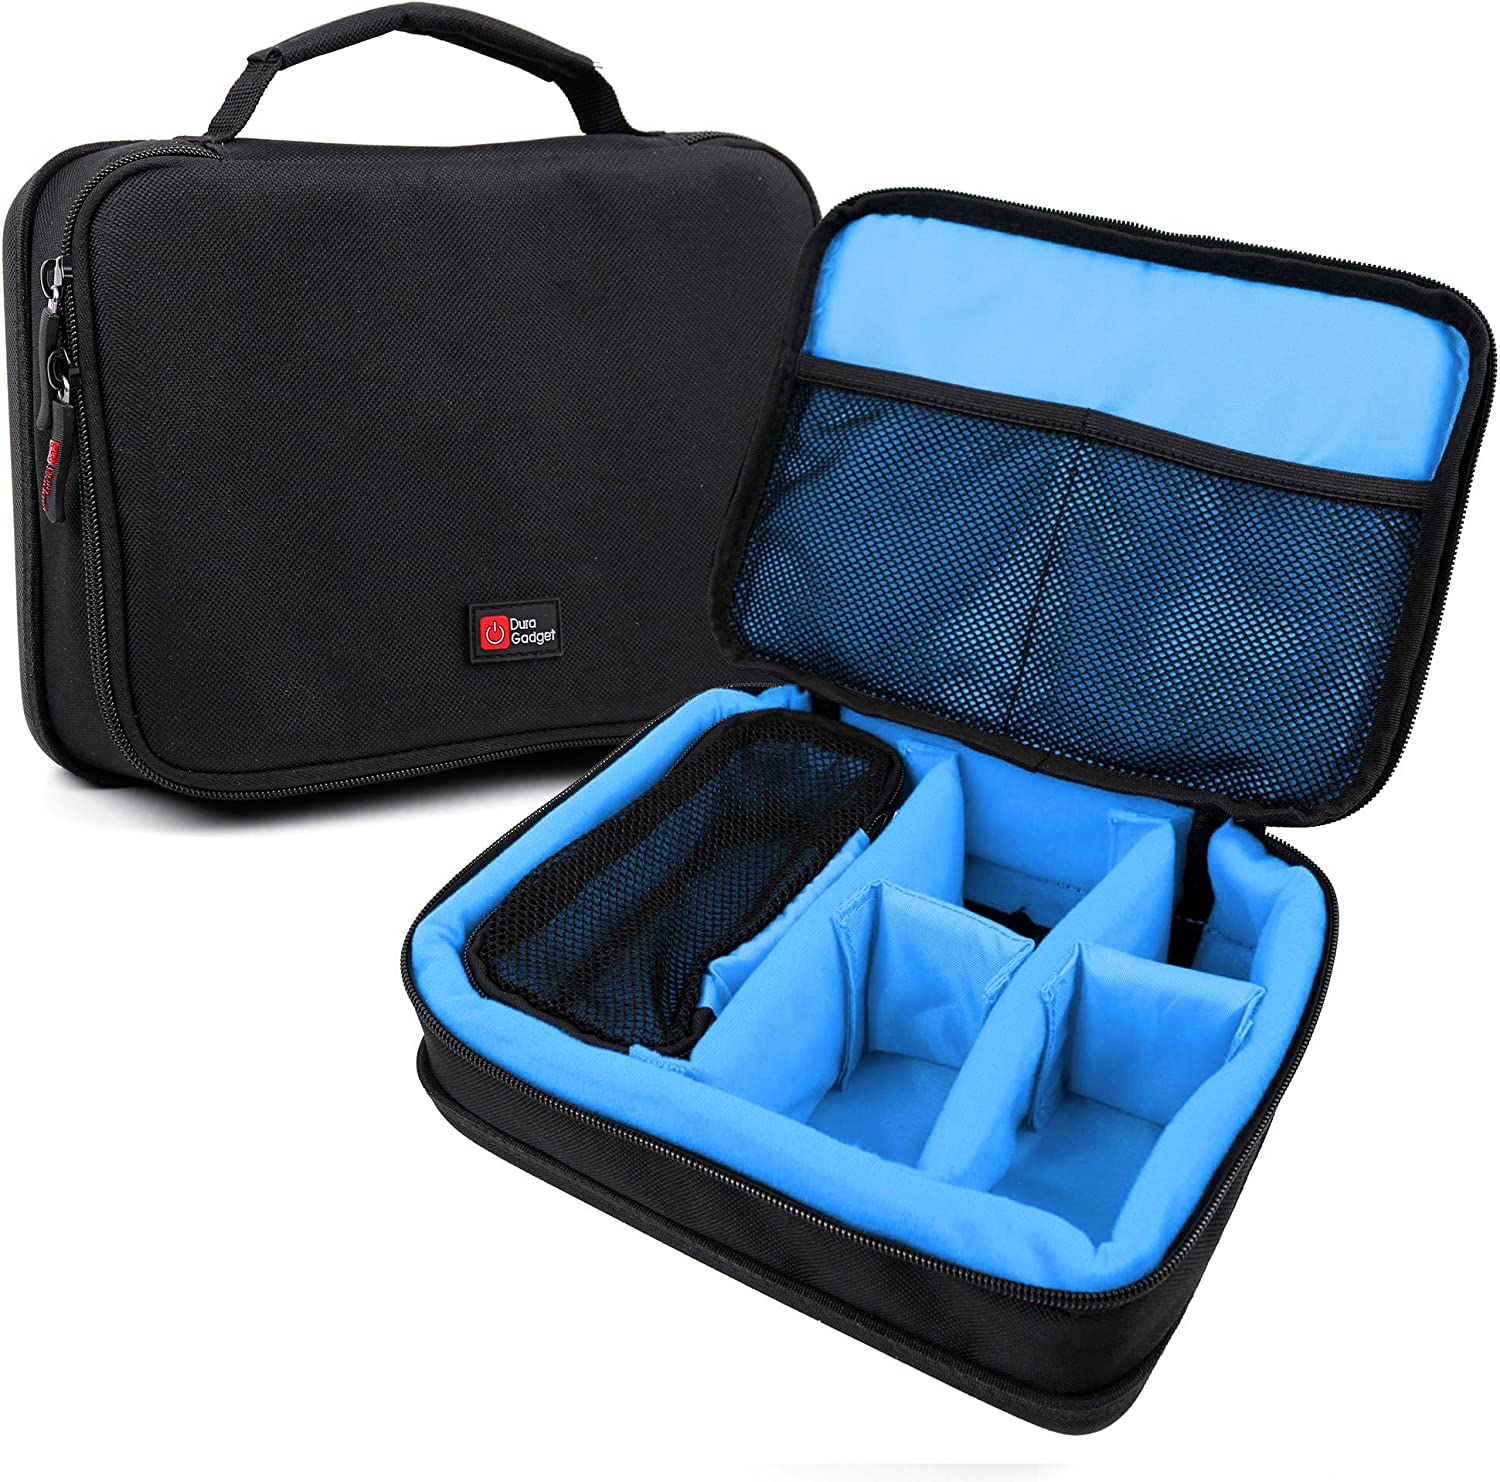 DURAGADGET Protective Black & Blue EVA Carry Case - Compatible with Med-Fit Pro Home Ultrasound Machine